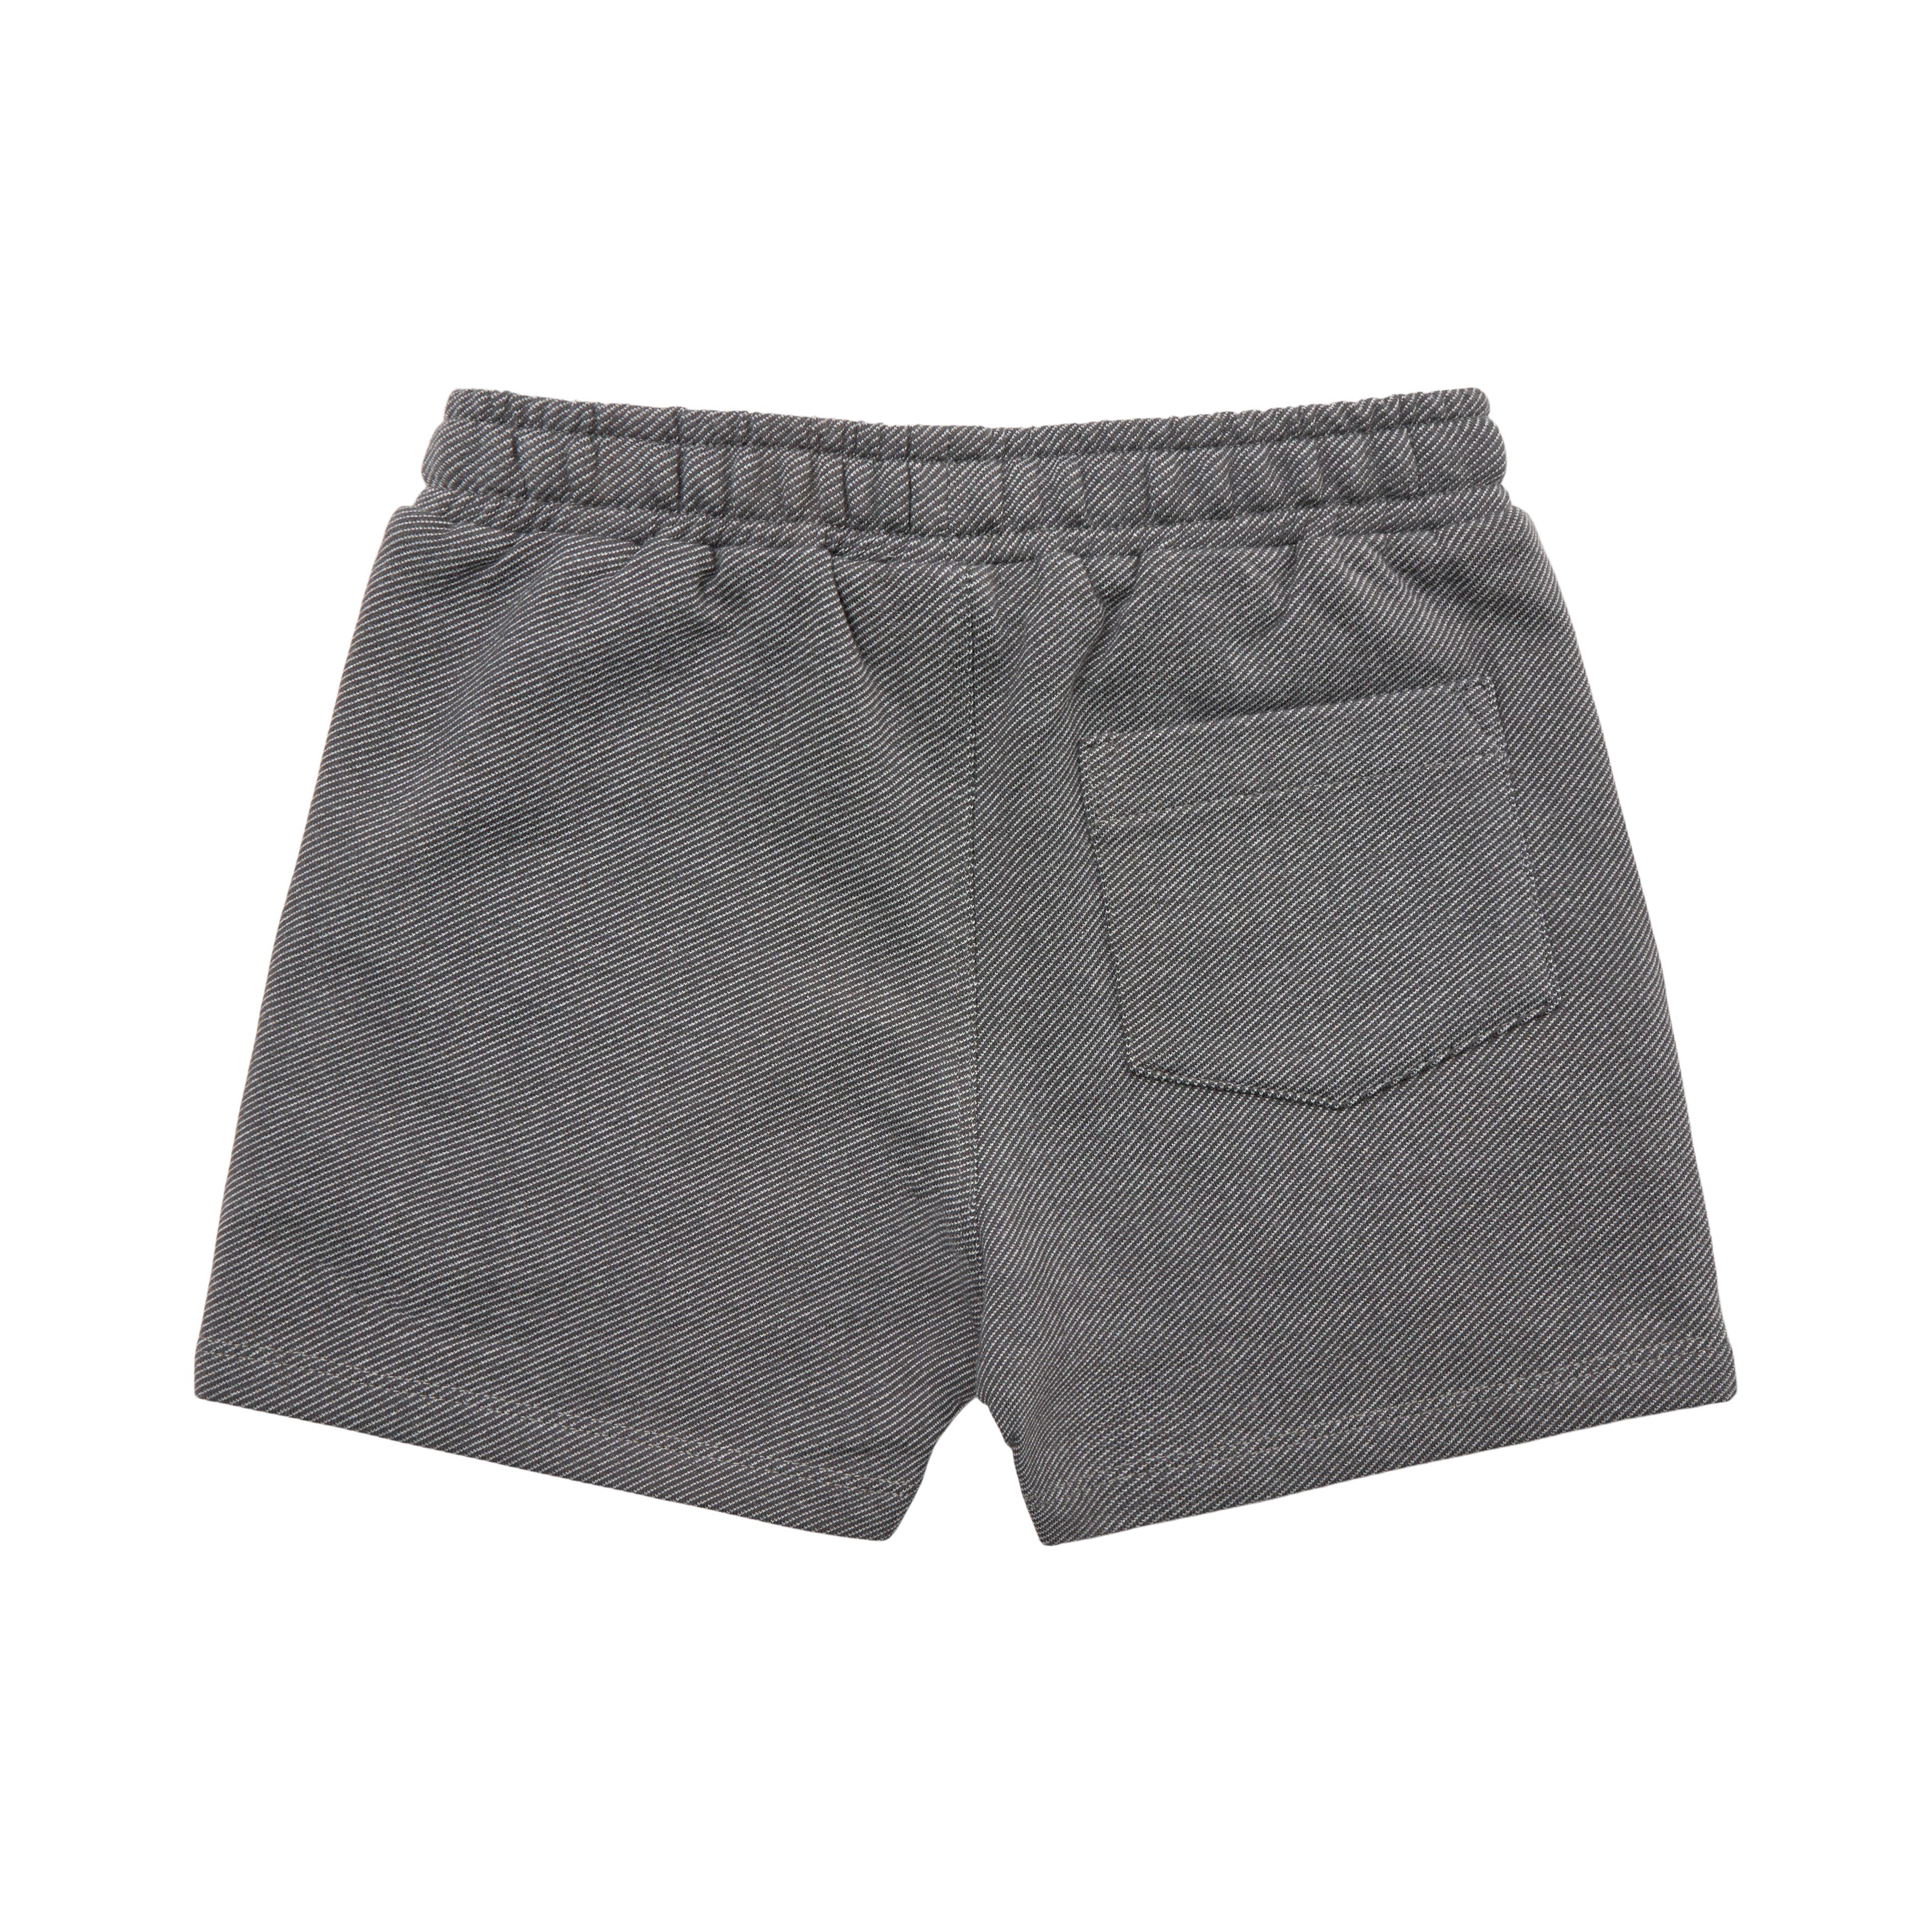 Petit by Sofie Schnoor P212417 shorts, washed black, 62